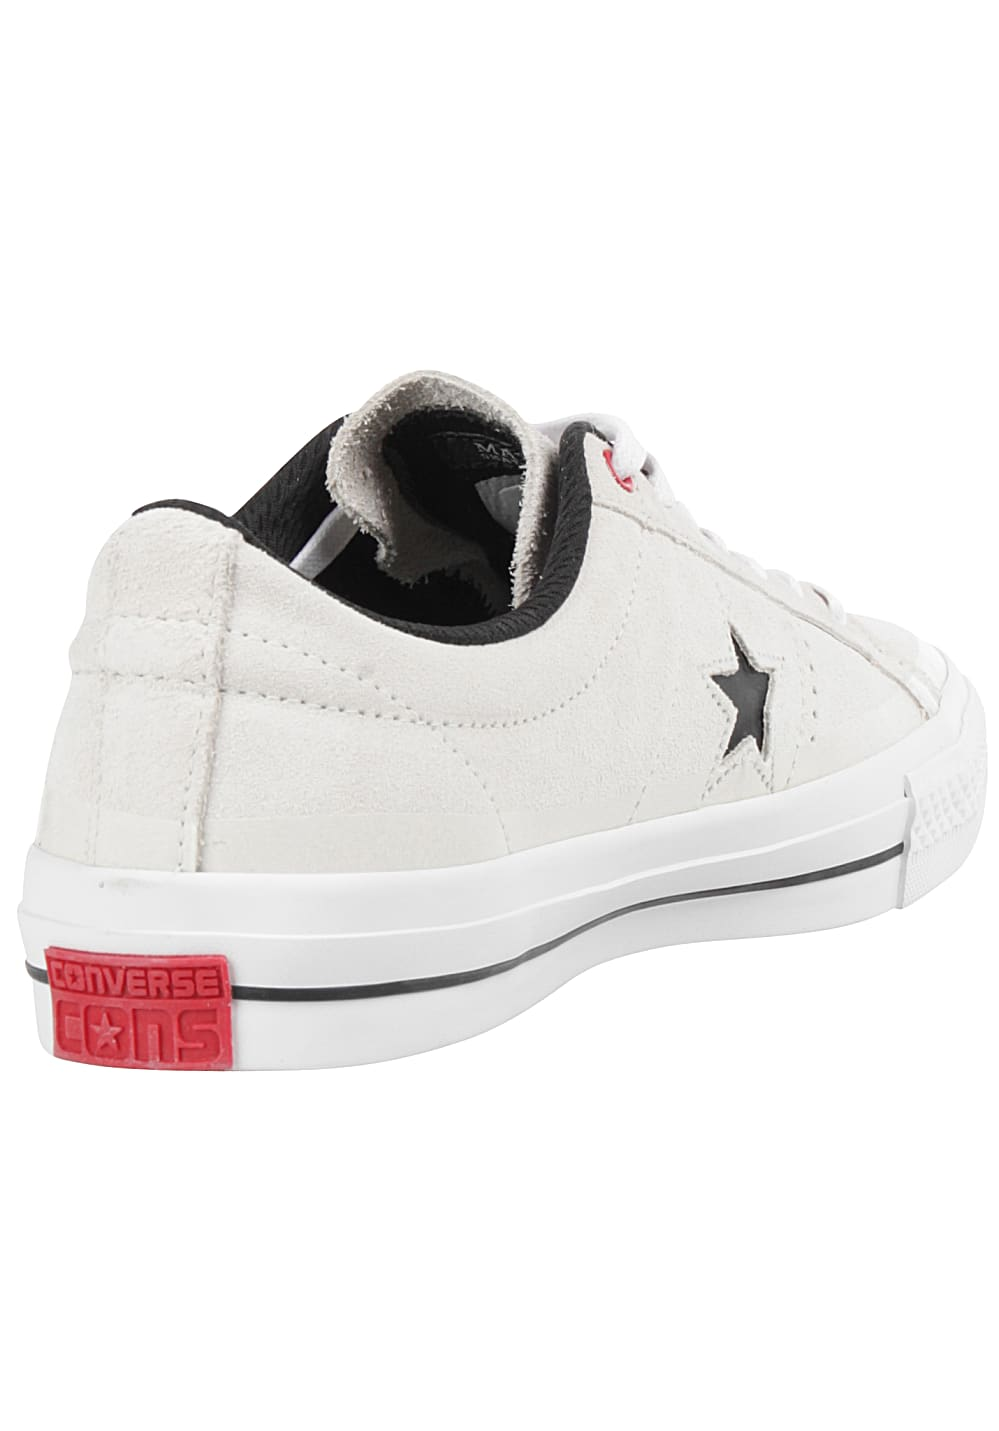 8c7d79b340c Next. -10%. Converse. One Star Pro Suede Ox - Sneakers. Regular Price  Save  10% €84.95